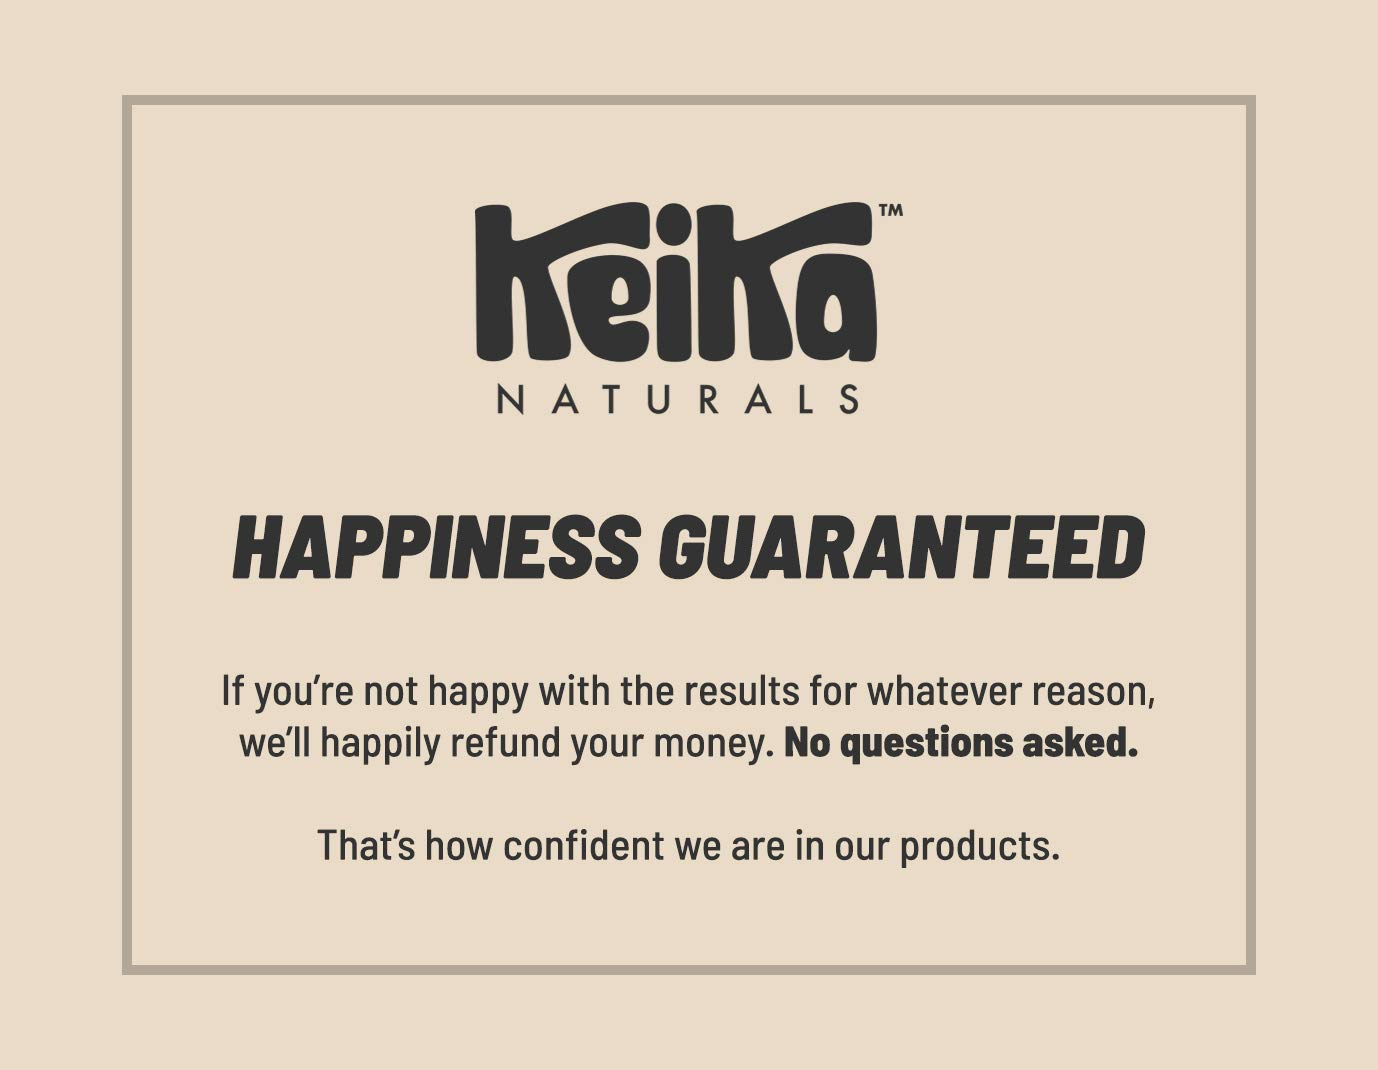 Keika Naturals Charcoal Black Soap Bar for Acne, Eczema, Psoriasis, Face, Body, Men Women Teens with Oily Skin, 5 oz.: Beauty